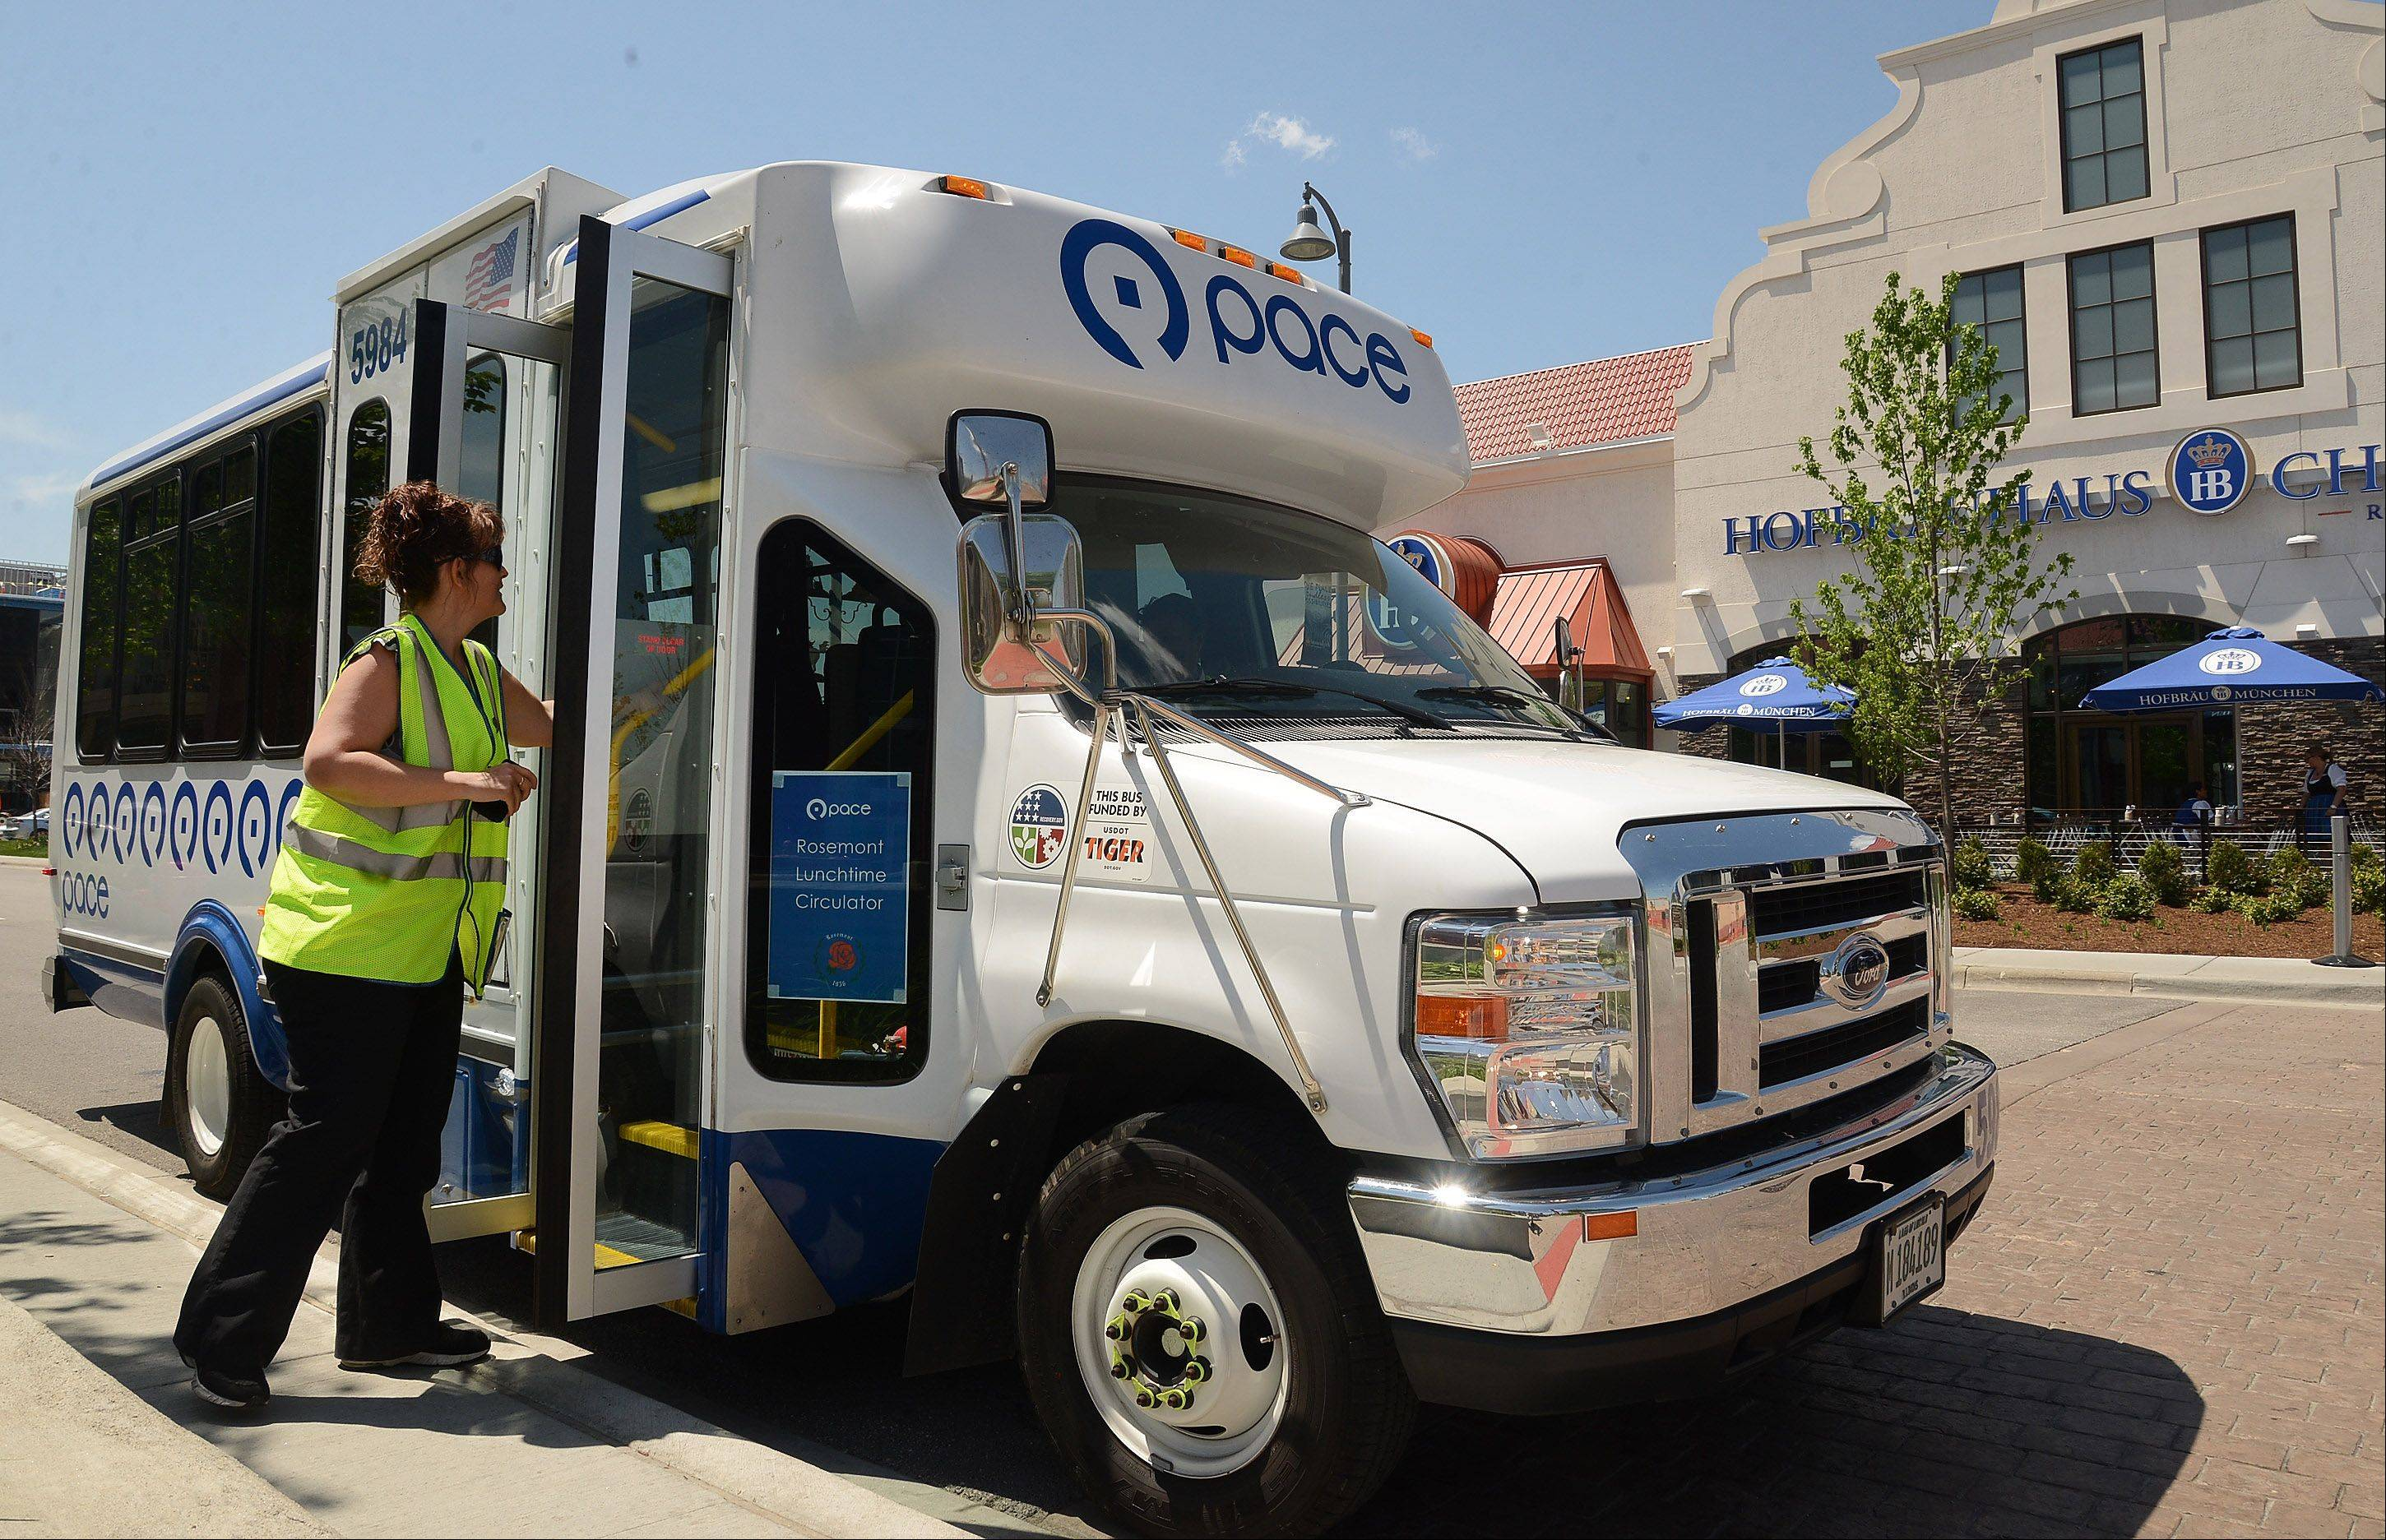 Shannon Borst of First Transit talks with driver Vanessa Pyles as one of two Pace Rosemont Lunchtime Circulator's make their rounds through the MB Financial Park at Rosemont entertainment district. The free service launched Monday.